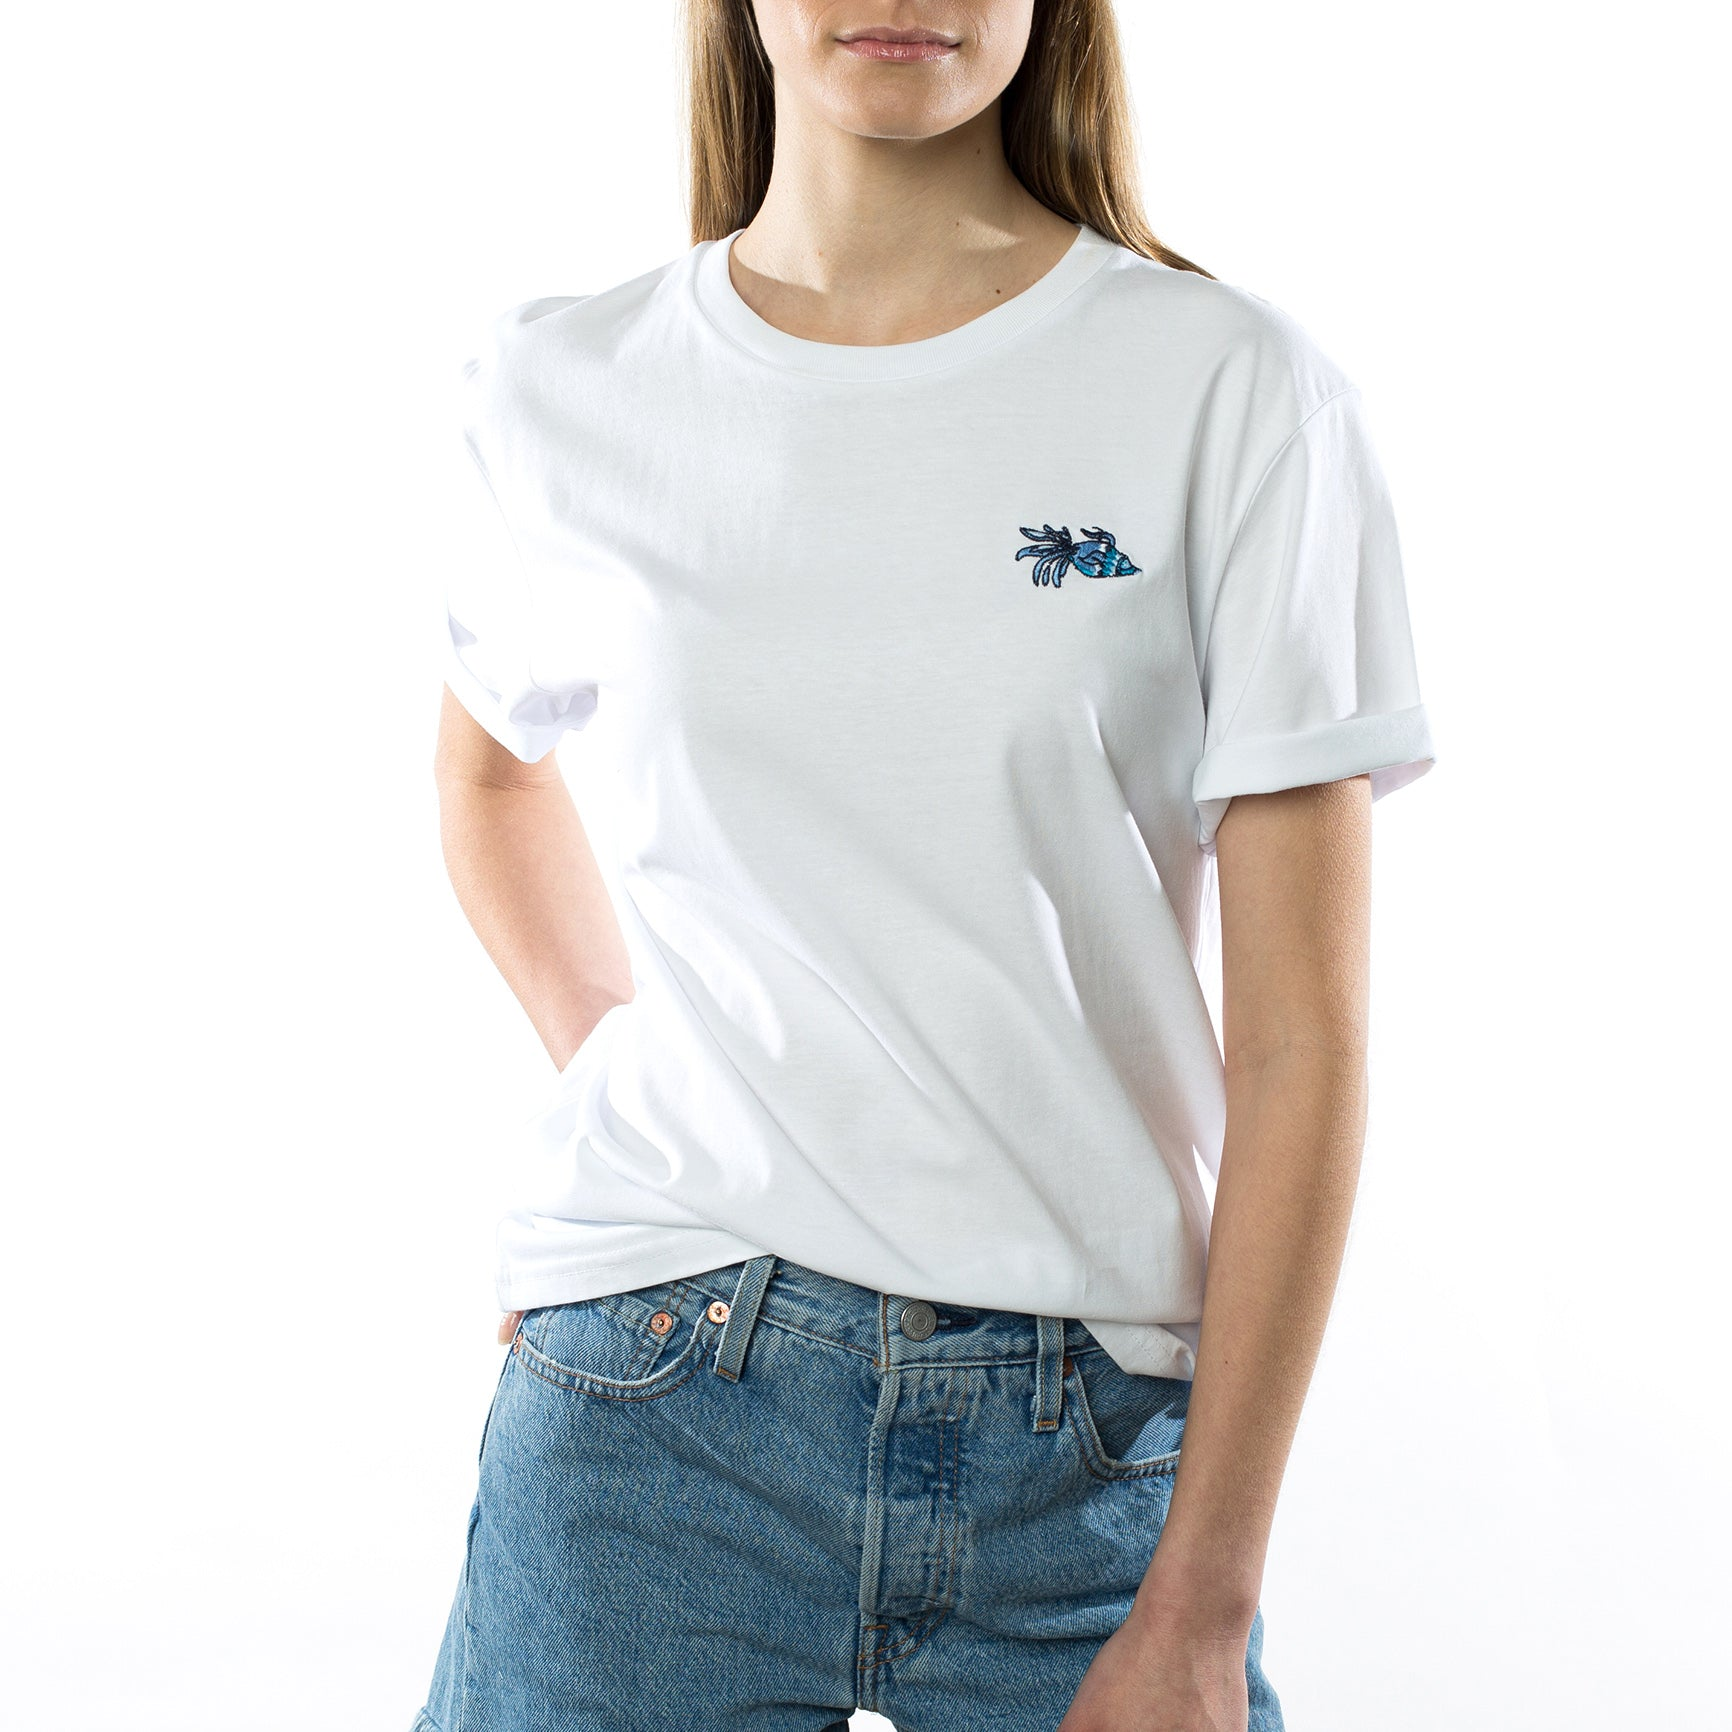 Camiseta Lucky Fish Blanca